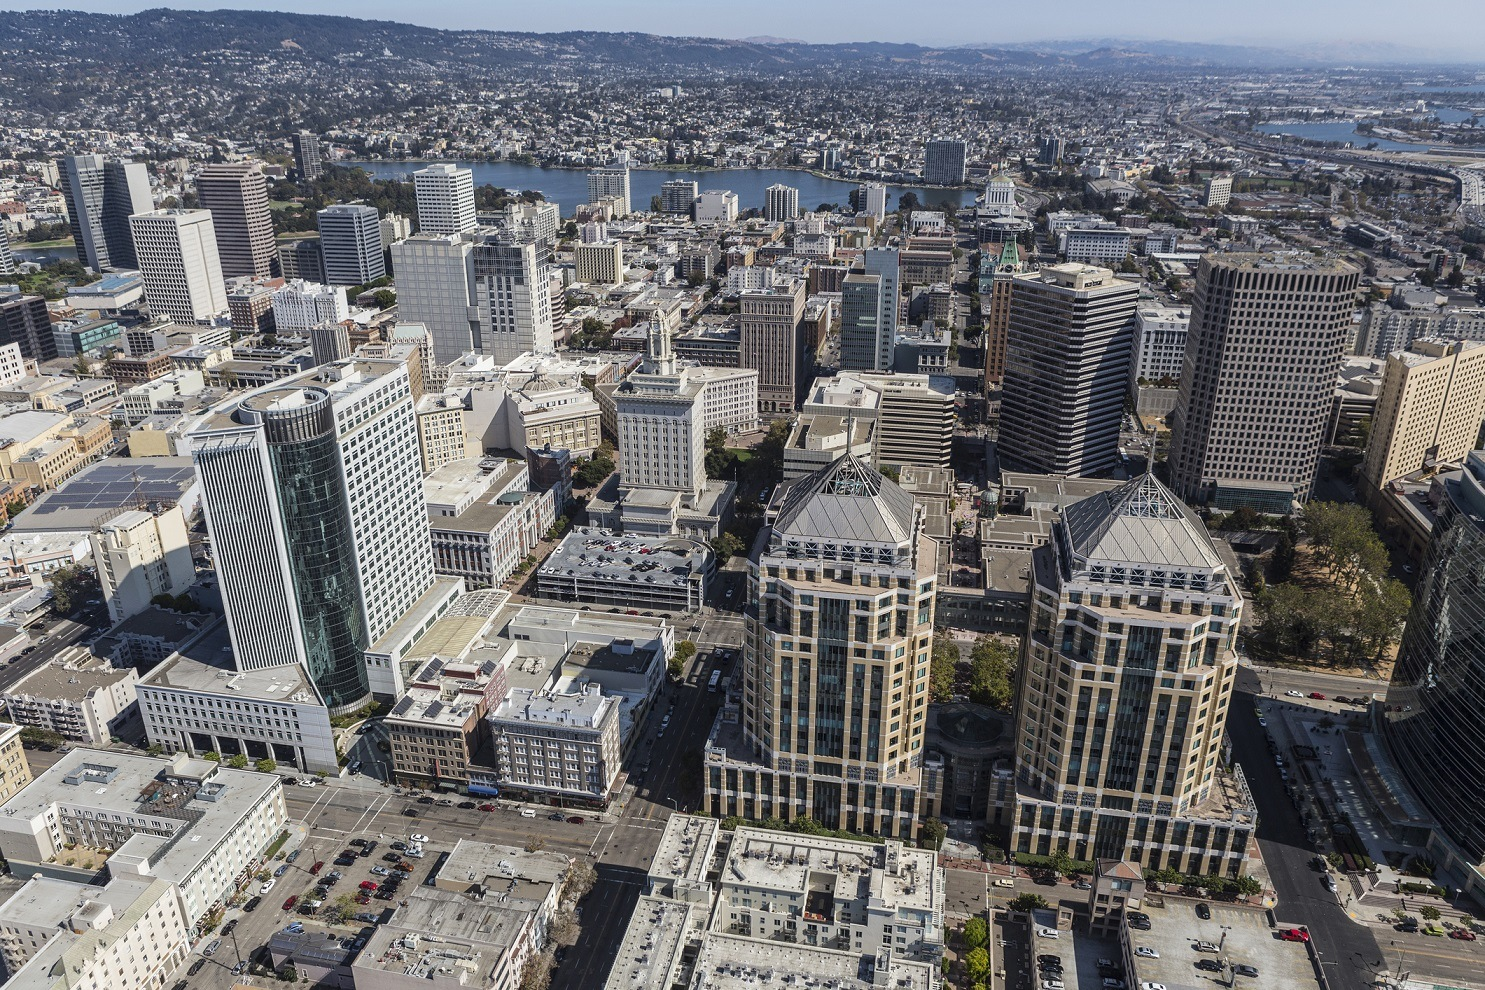 aerial view of Oakland, California